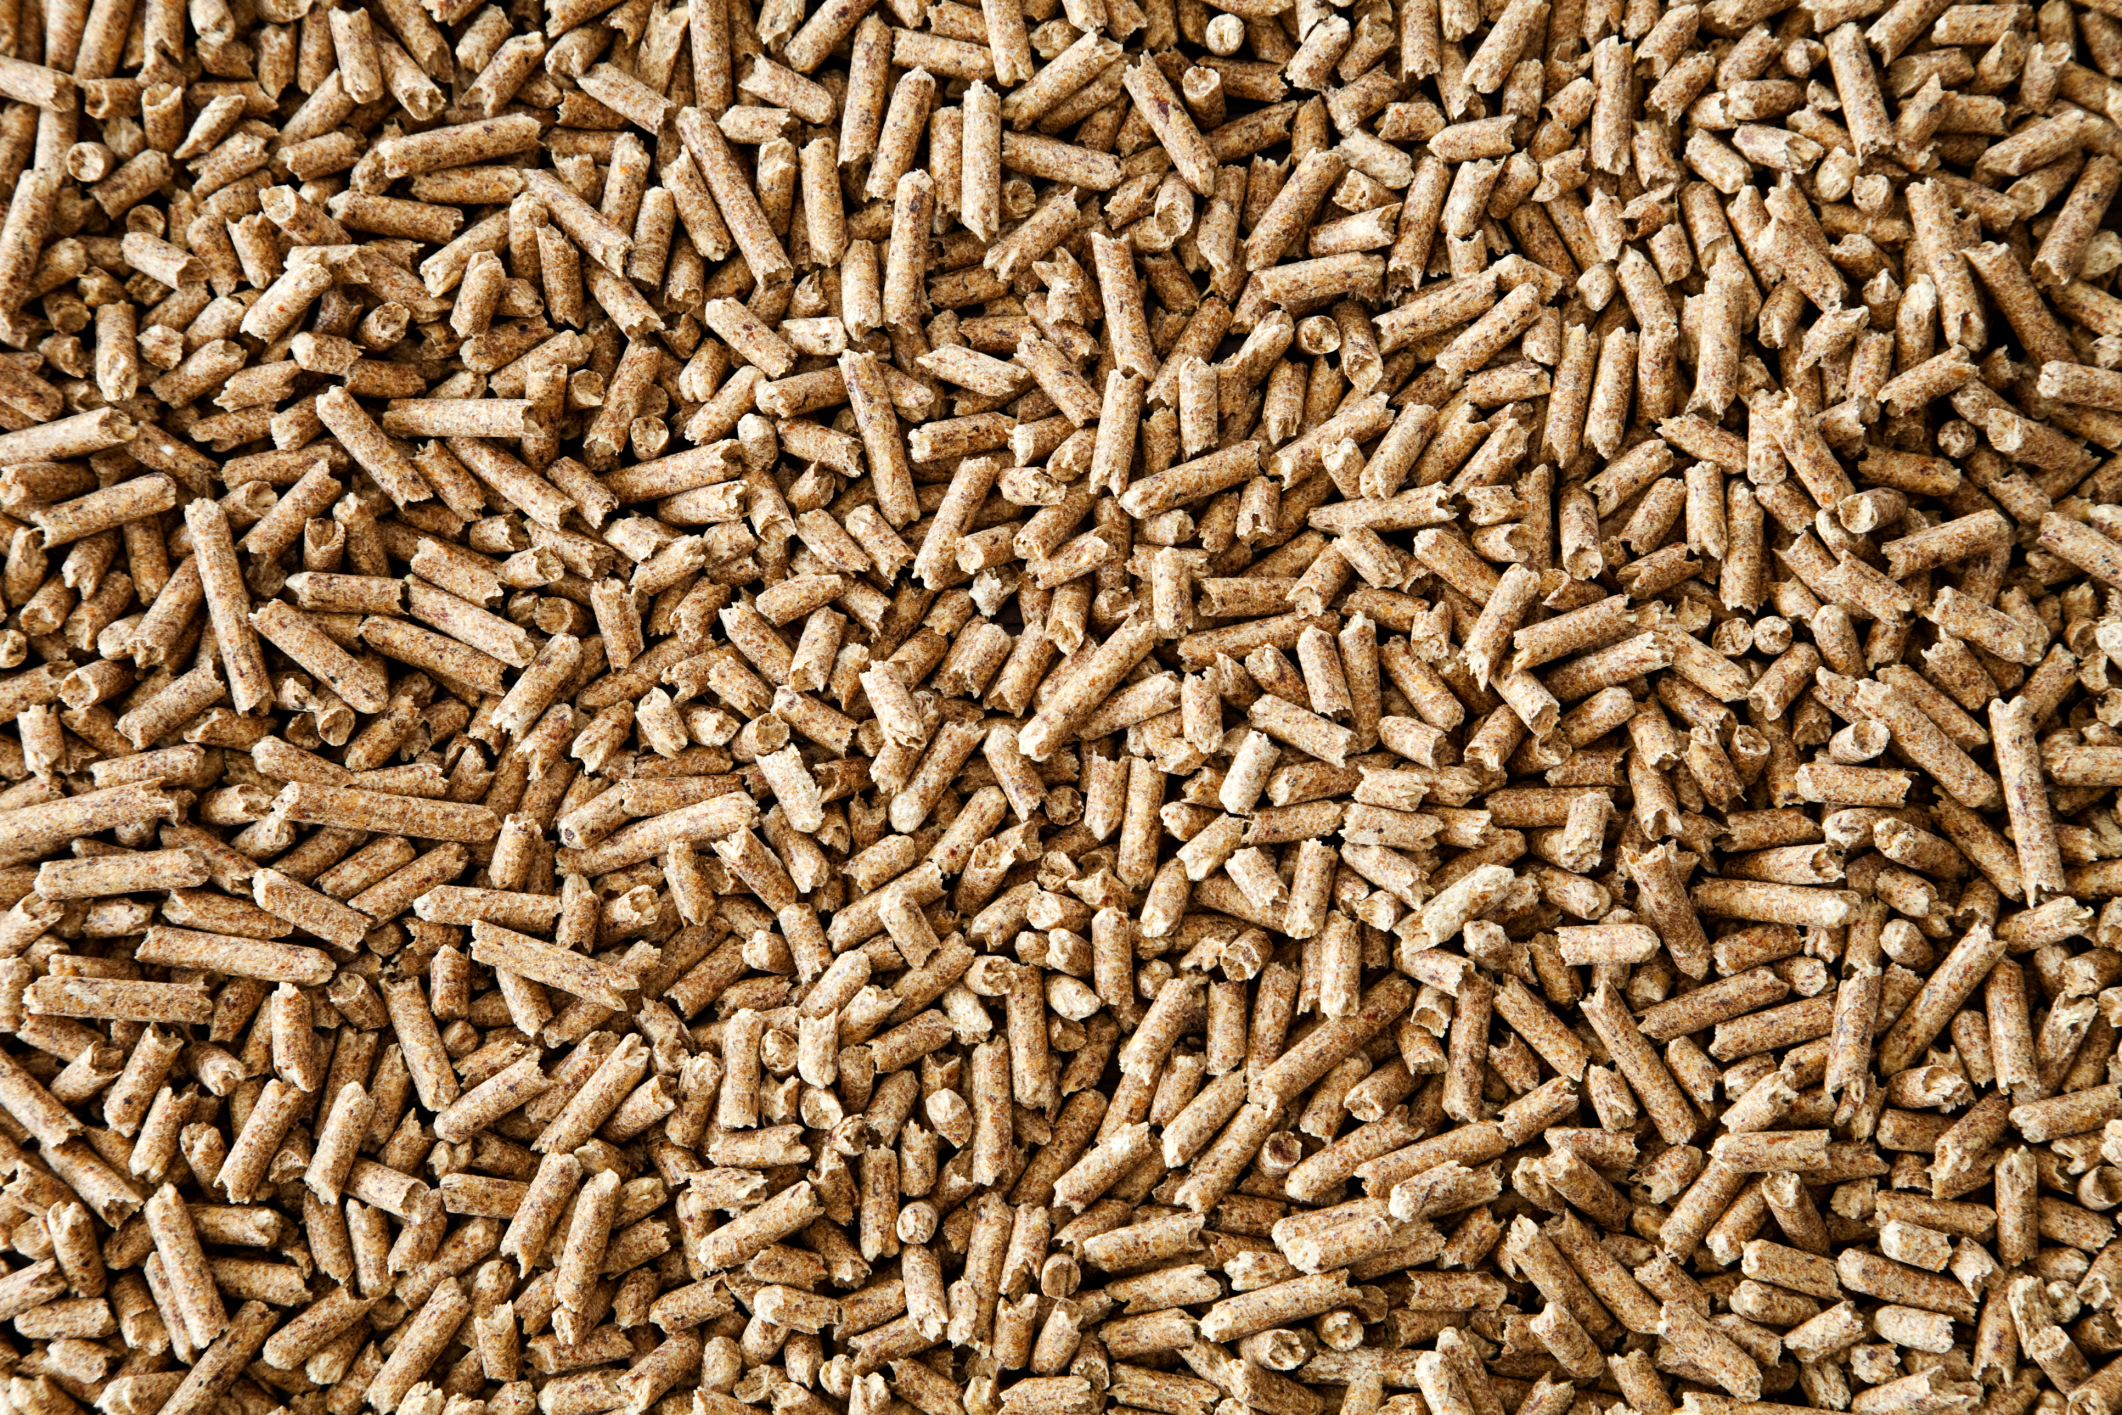 Wood pellets wooder ukraine producer of